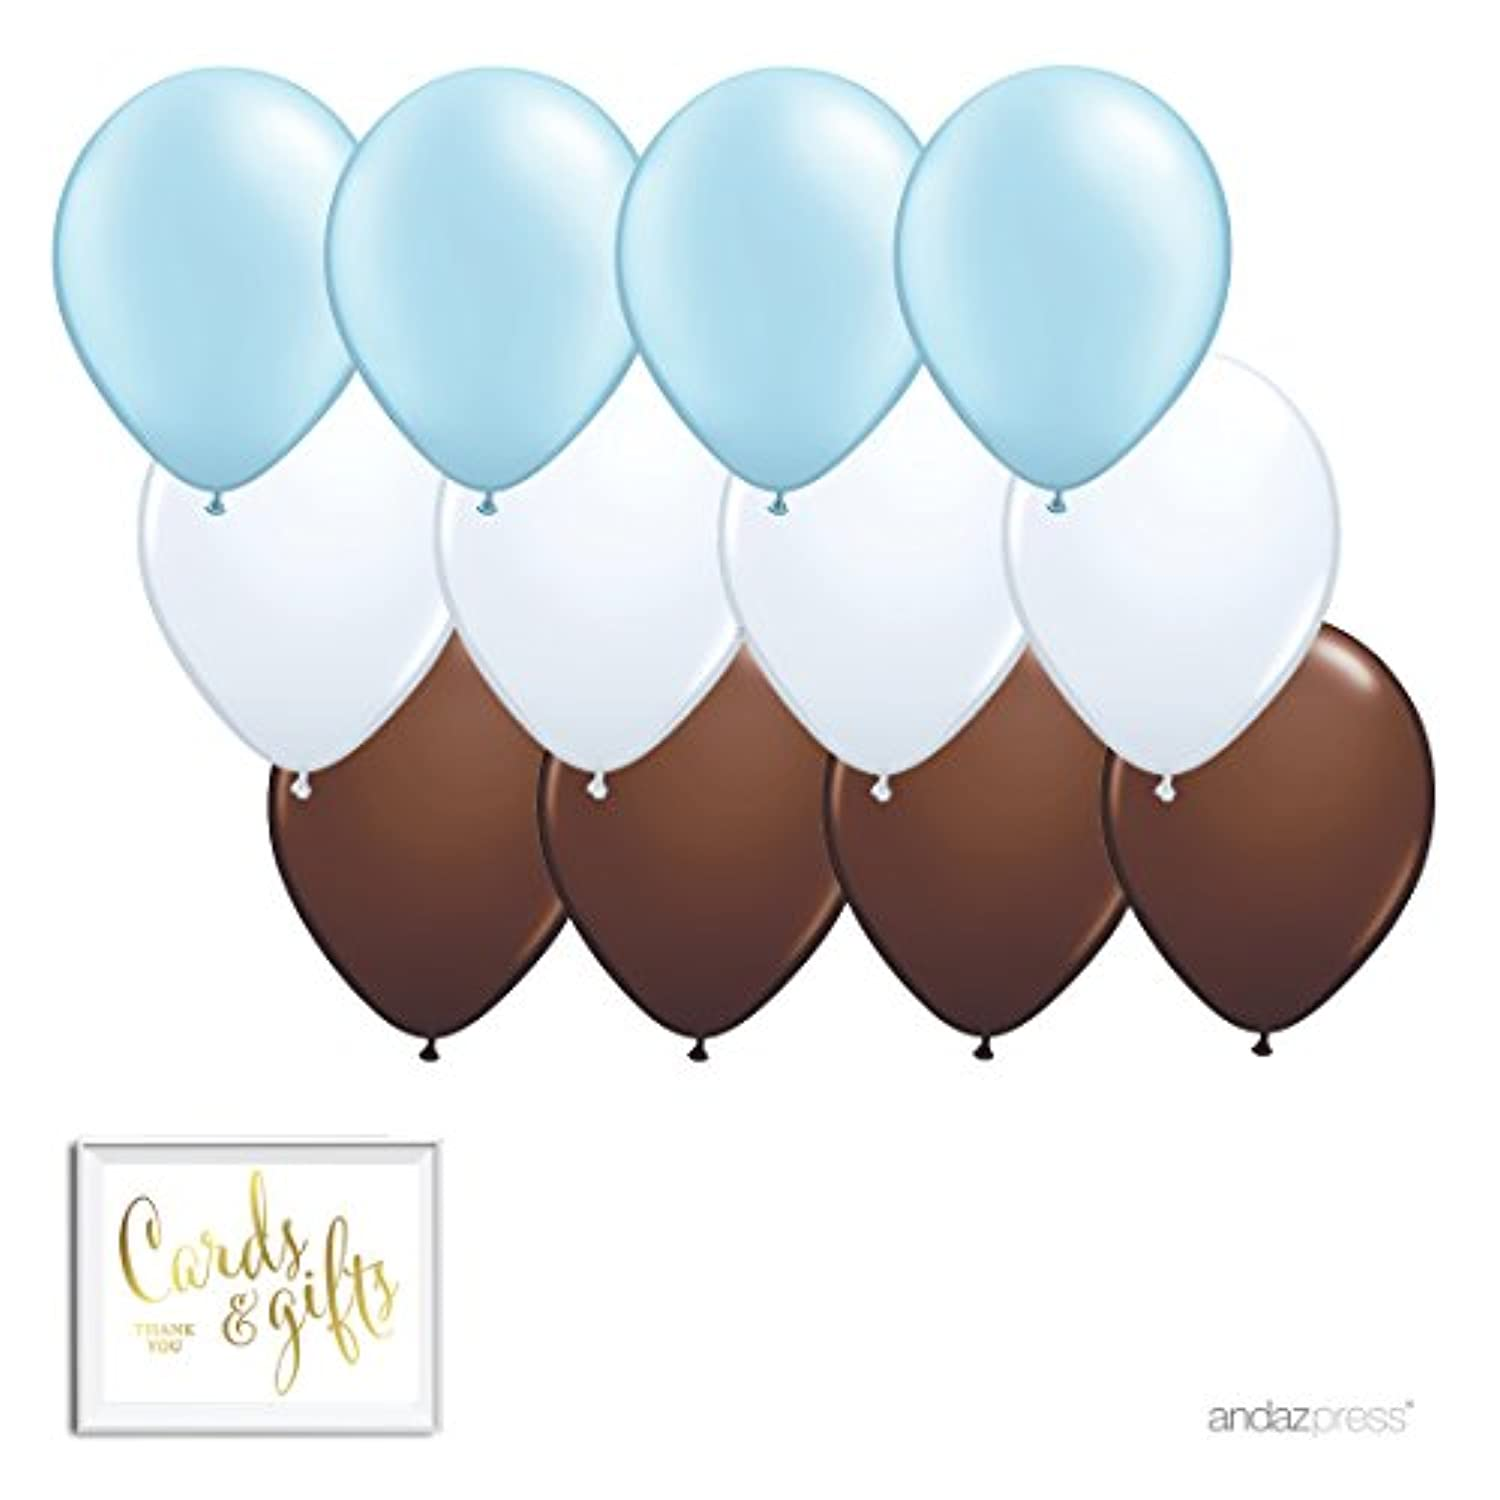 Andaz Press 11-inch Latex Balloon Trio Party Kit with Gold Cards & Gifts Sign, Baby Blue, White, Brown, 12-pk, Boy Monkey Baby Shower